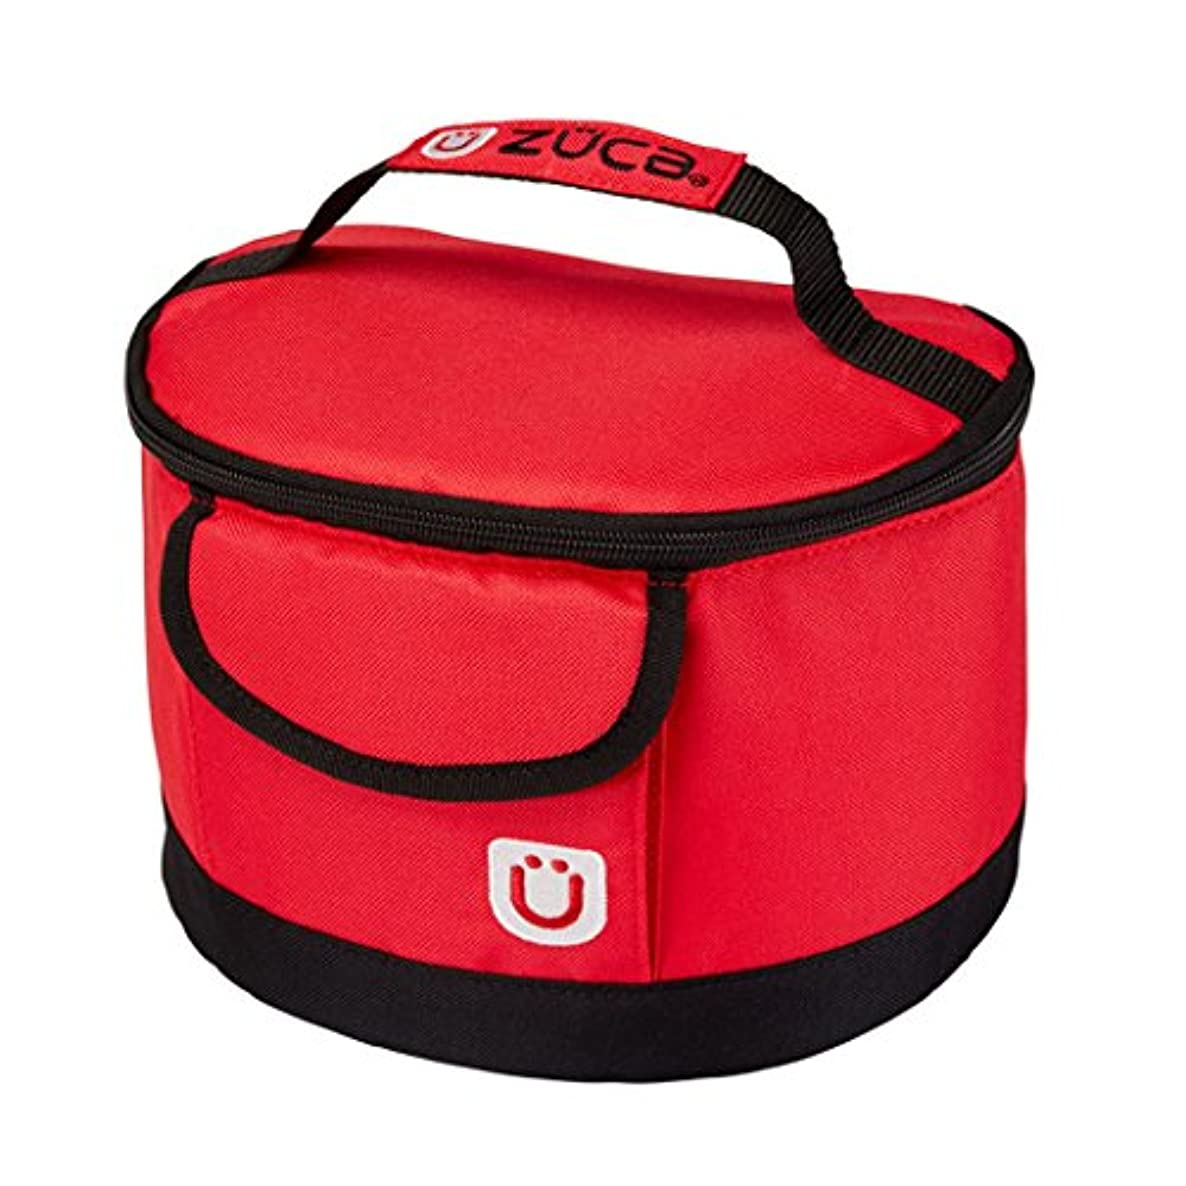 Zuca Lunchbox (Red)